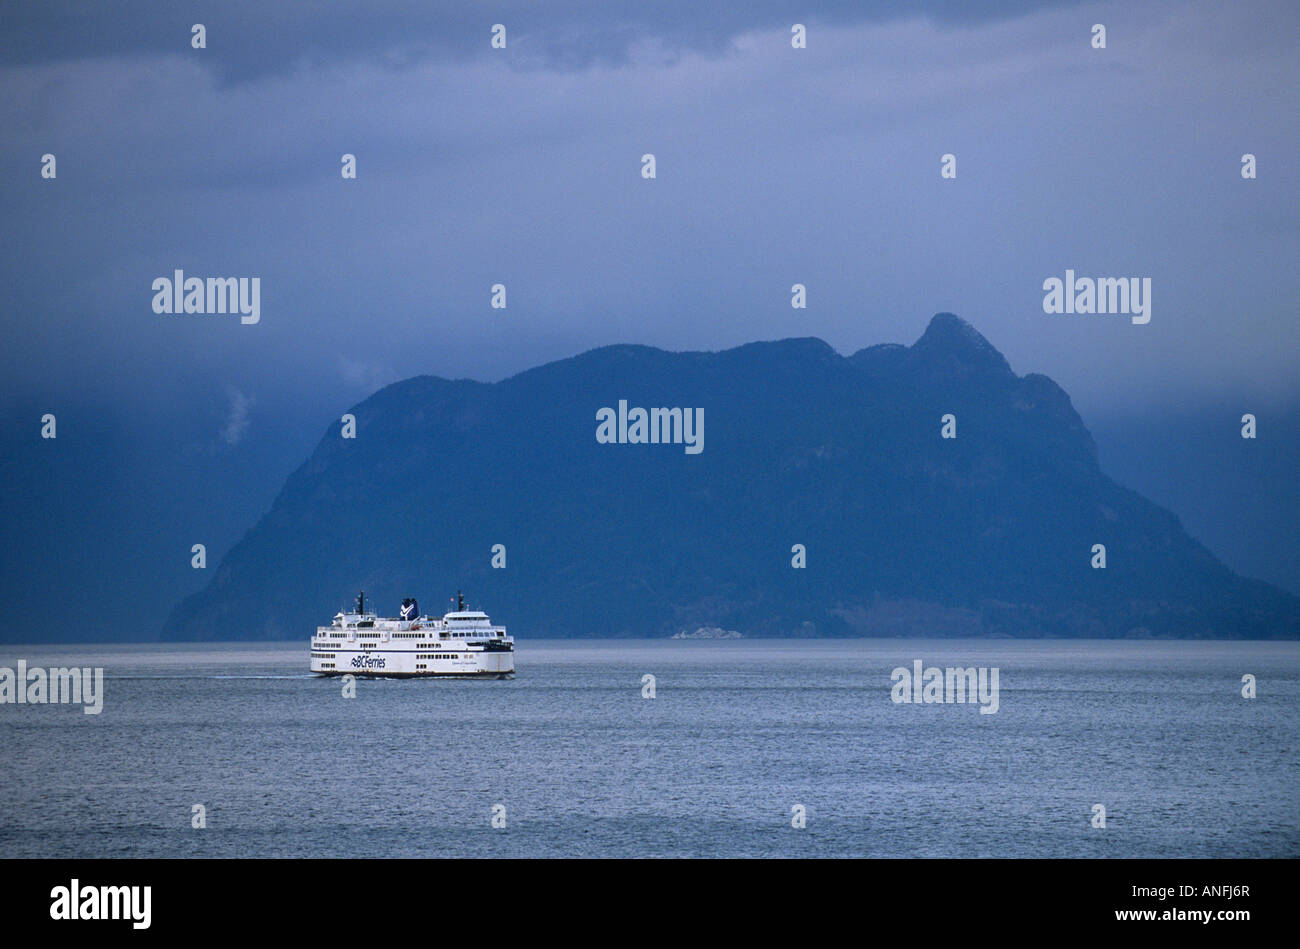 A BC Ferry crosses the Strait of Georgia under a menacing sky, british columbia, canada. - Stock Image